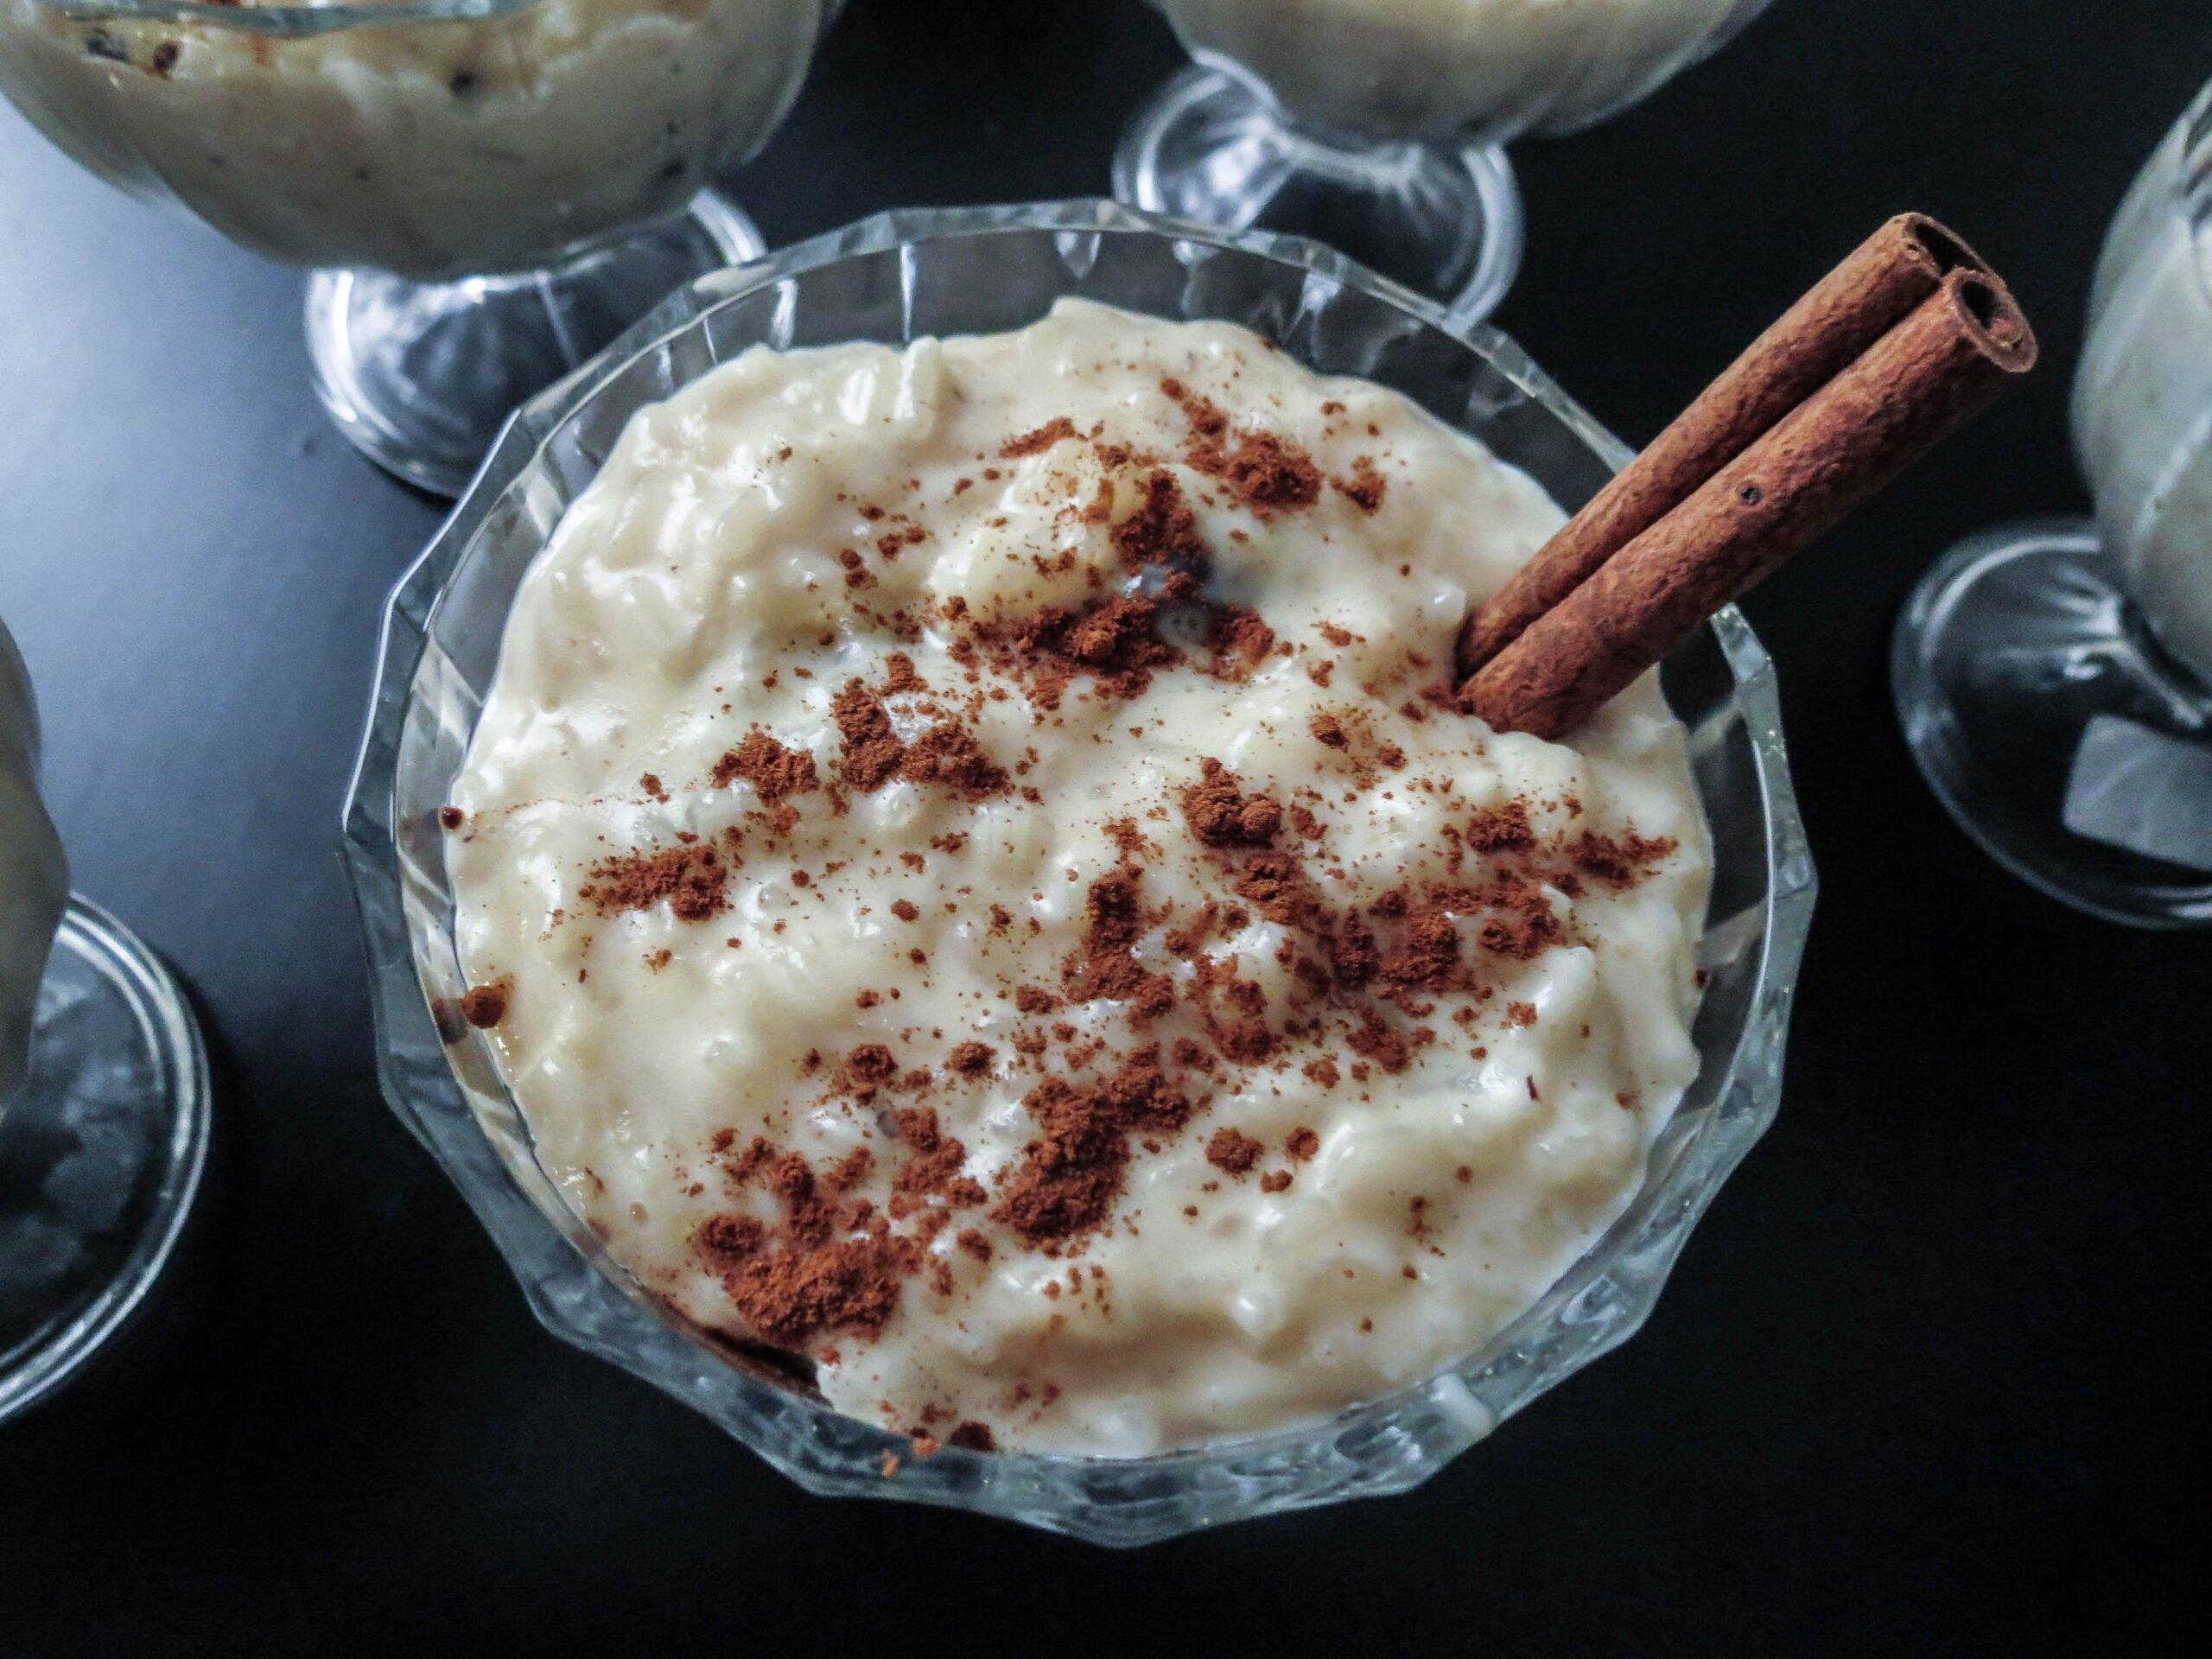 ... Cup Gourmet Series – Costa Rica: Arroz Con Leche (Rice Pudding